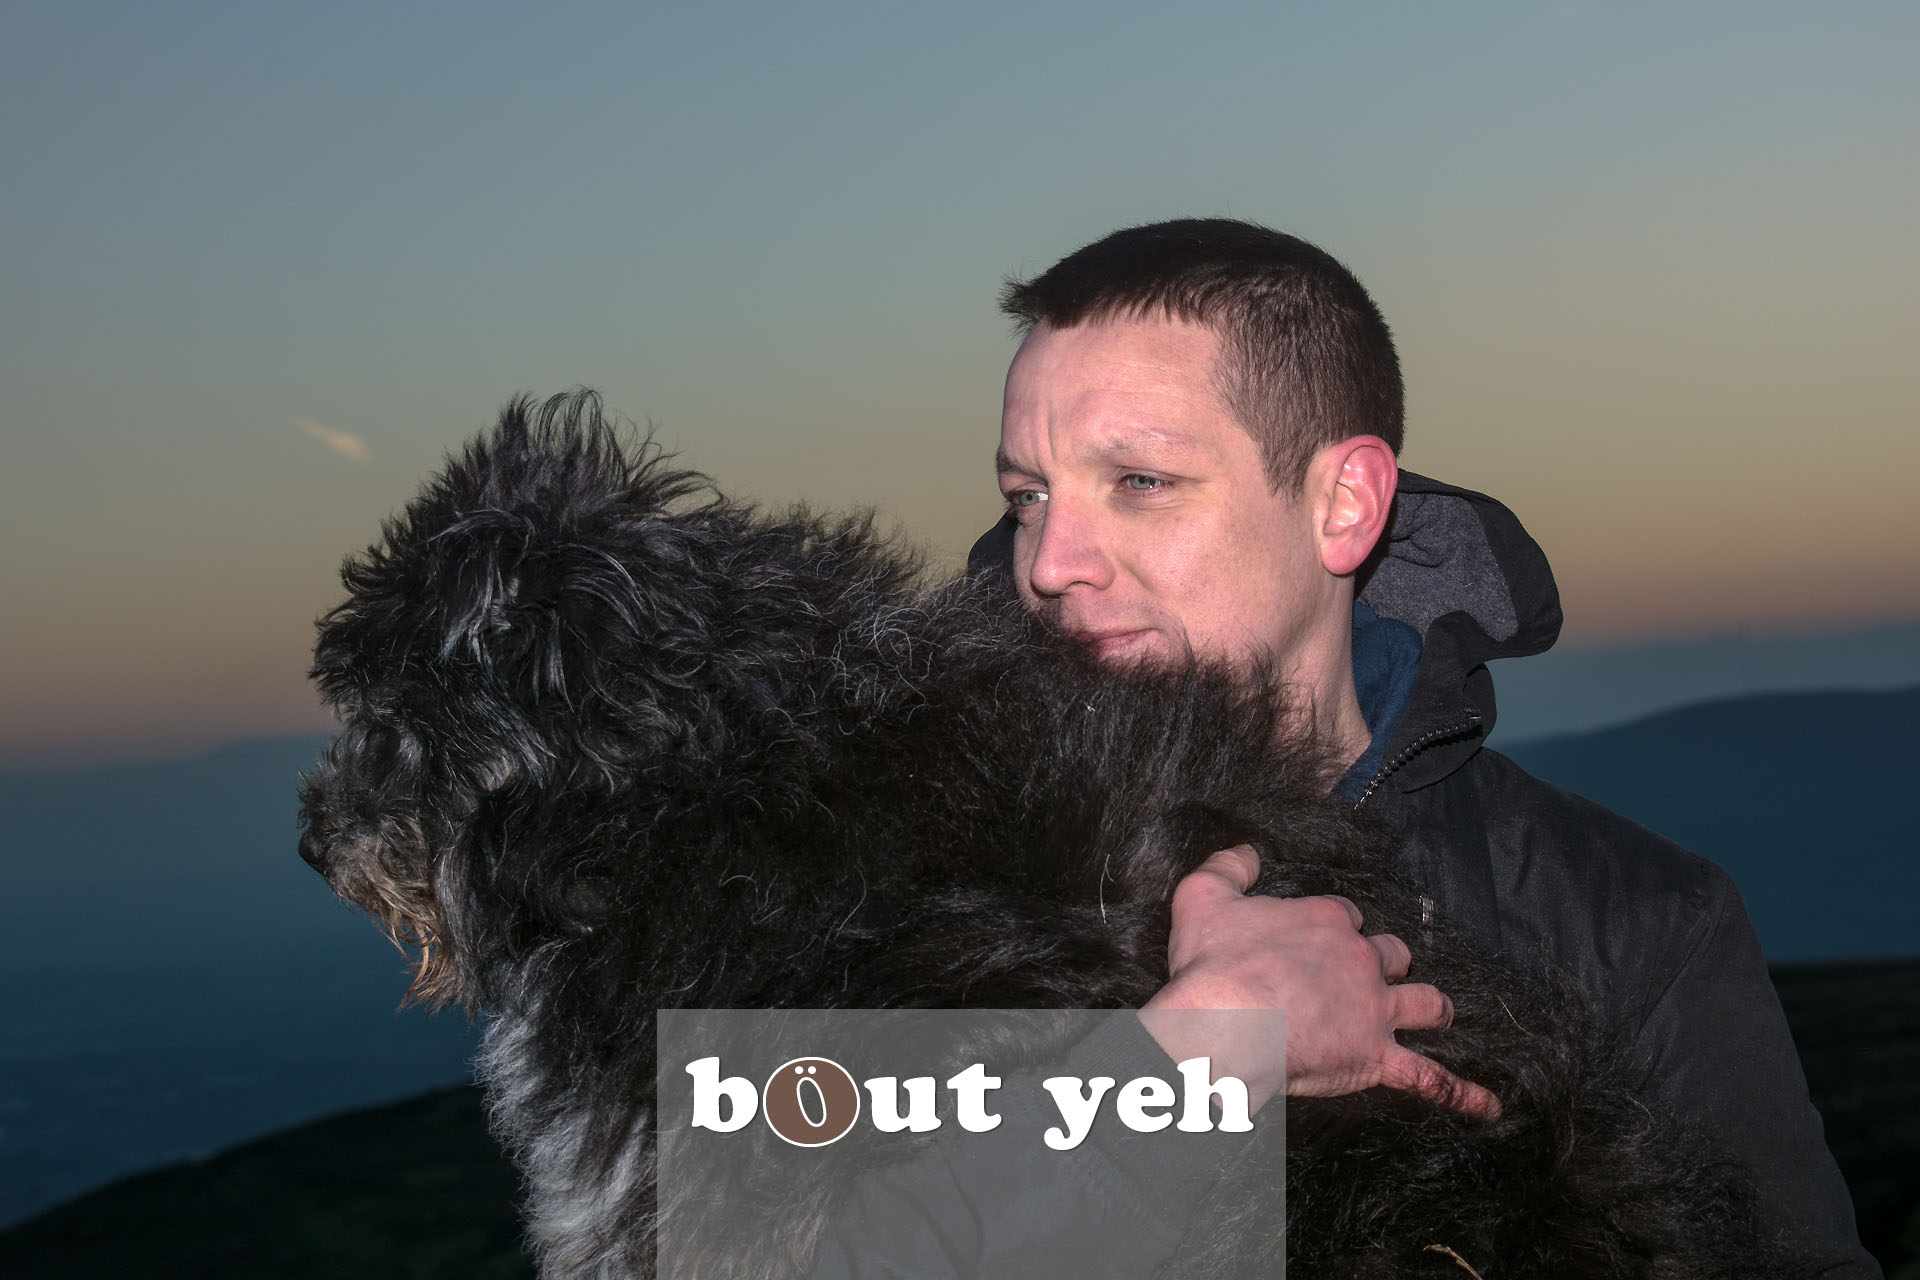 Man carries his dog for last walk on Cave Hill, Belfast, Northern Ireland - photo 4105.